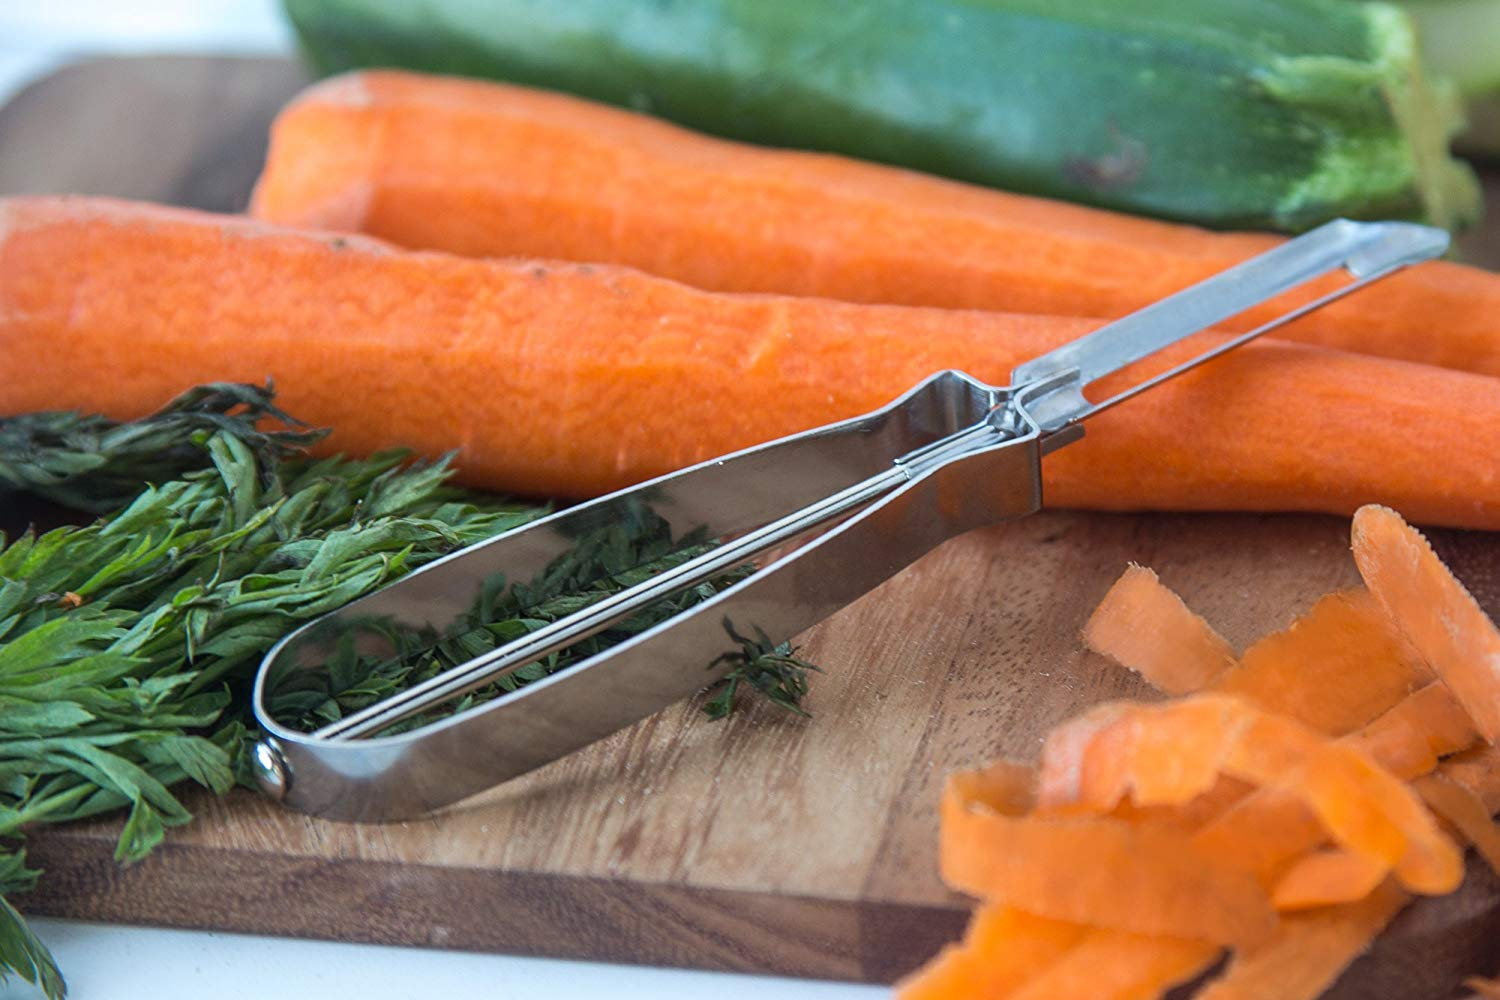 FoxRun Classic Stainless Steel Fruit Vegetable Peeler Peel Carrot Potato Tool